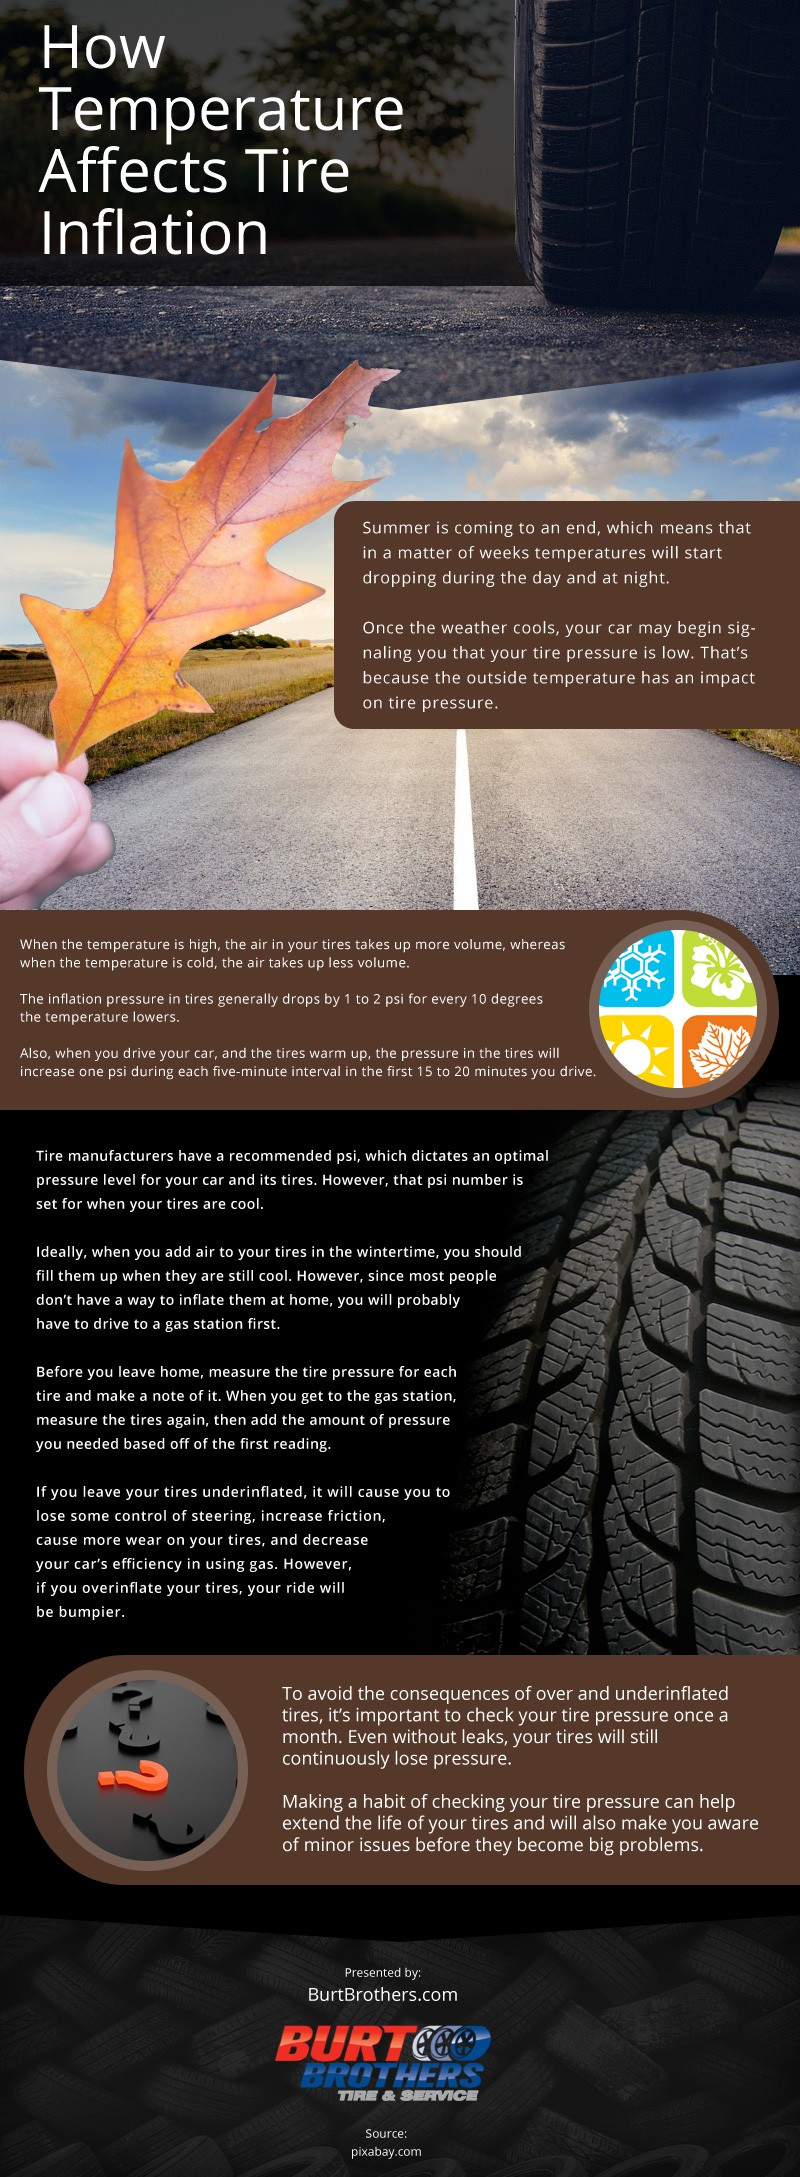 How-Temperature-Affects-Tire-Inflation Infographic